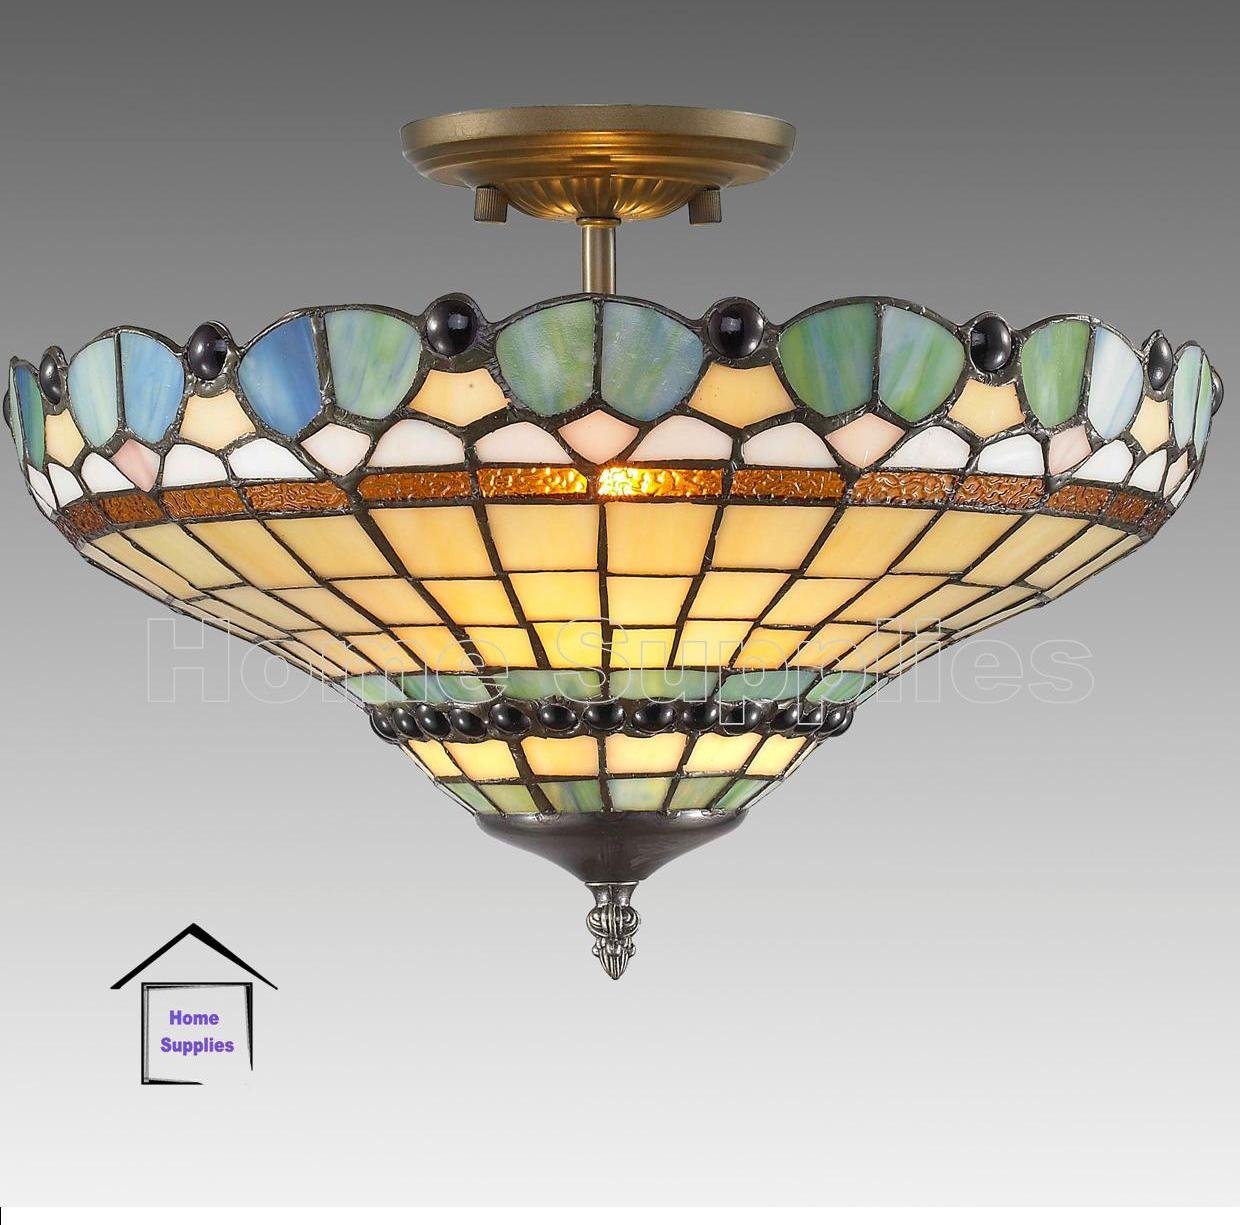 Peacock Tiffany Semi Flush Ceiling Light       review and more information